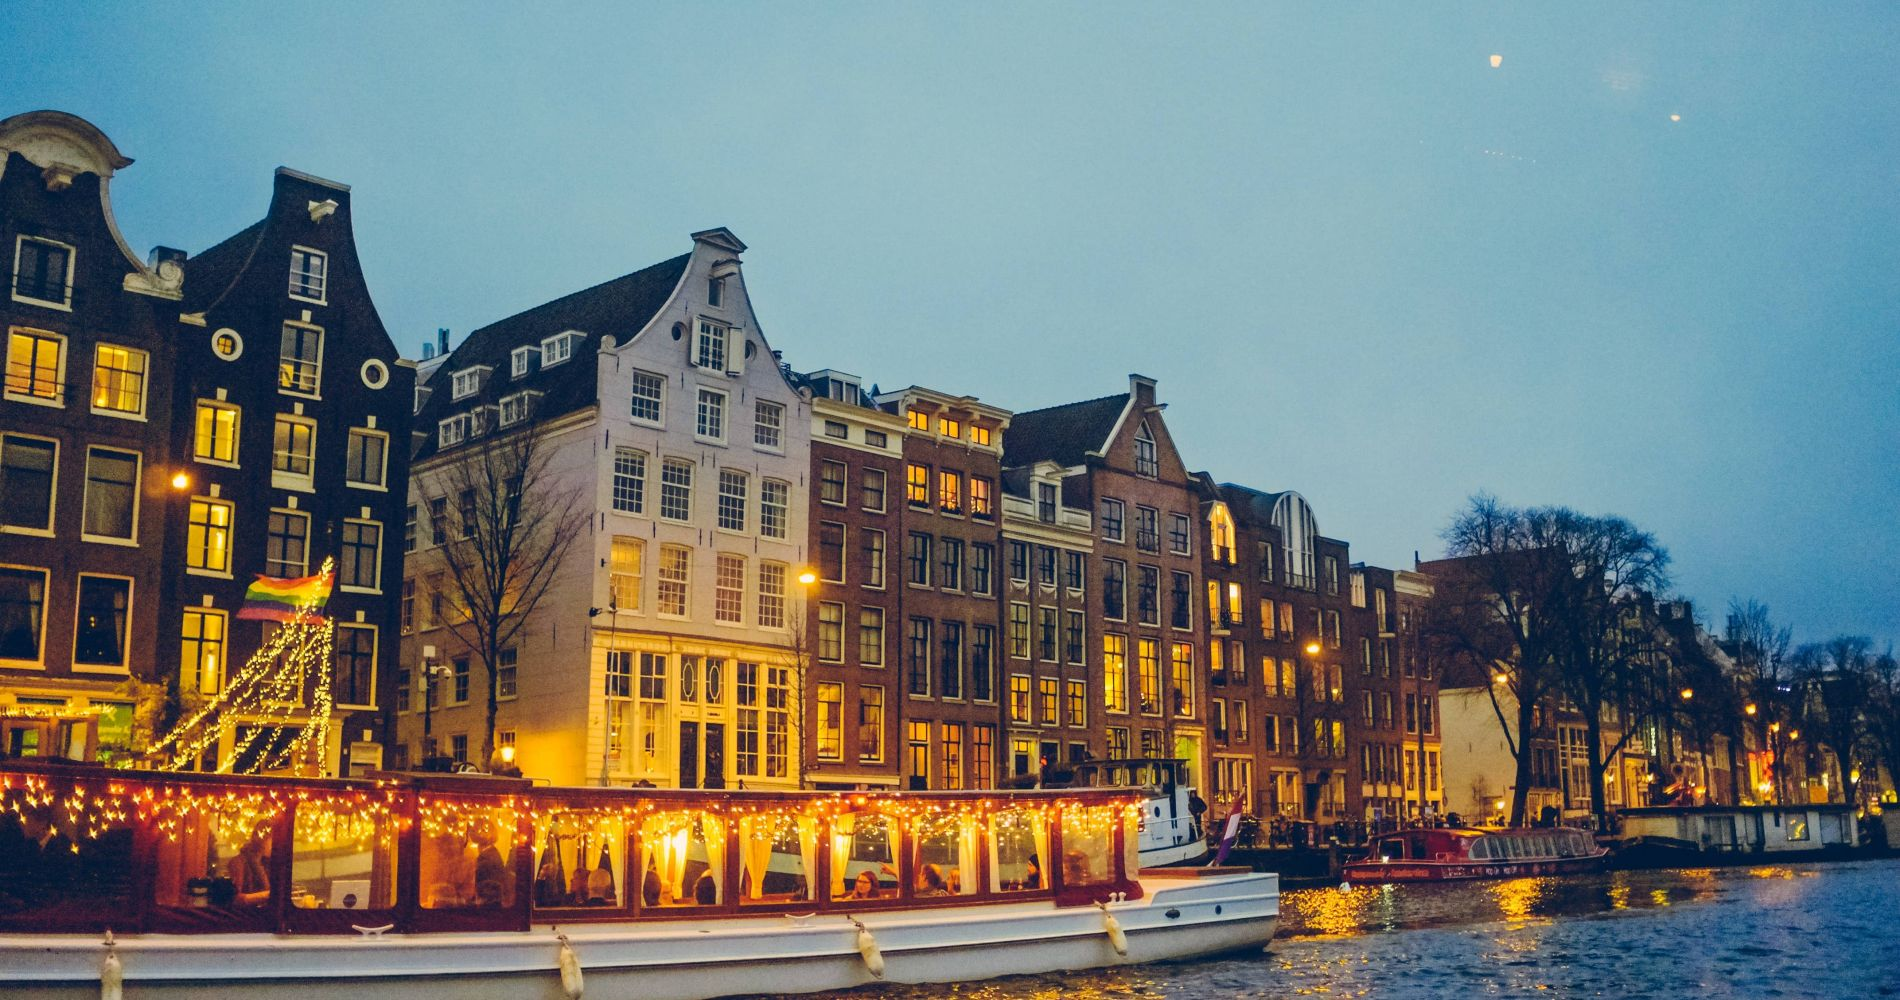 Candlelight Cruise in Amsterdam For Two